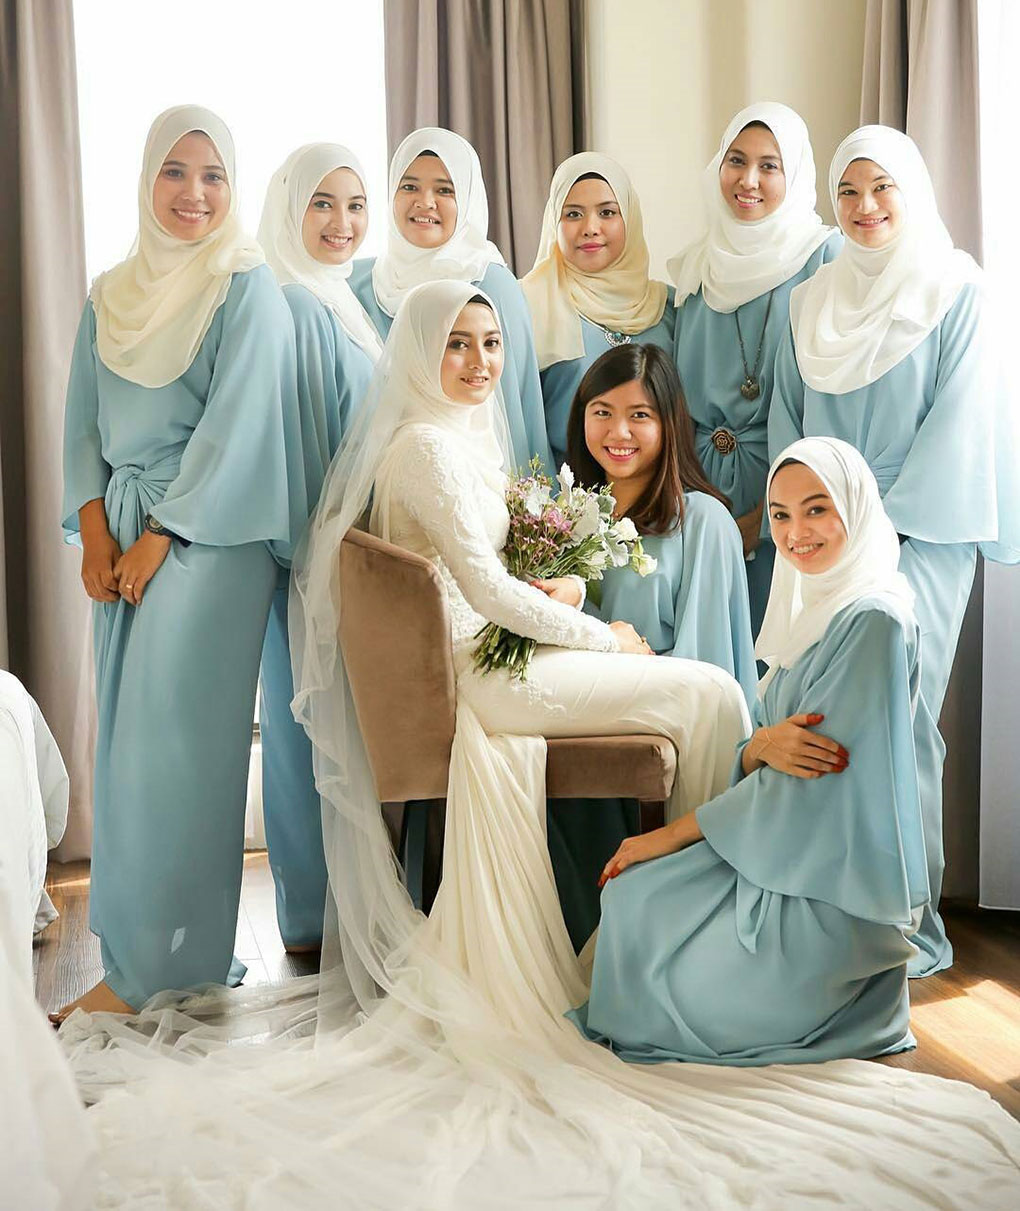 Baju Bridesmaid Light blue & ivory white